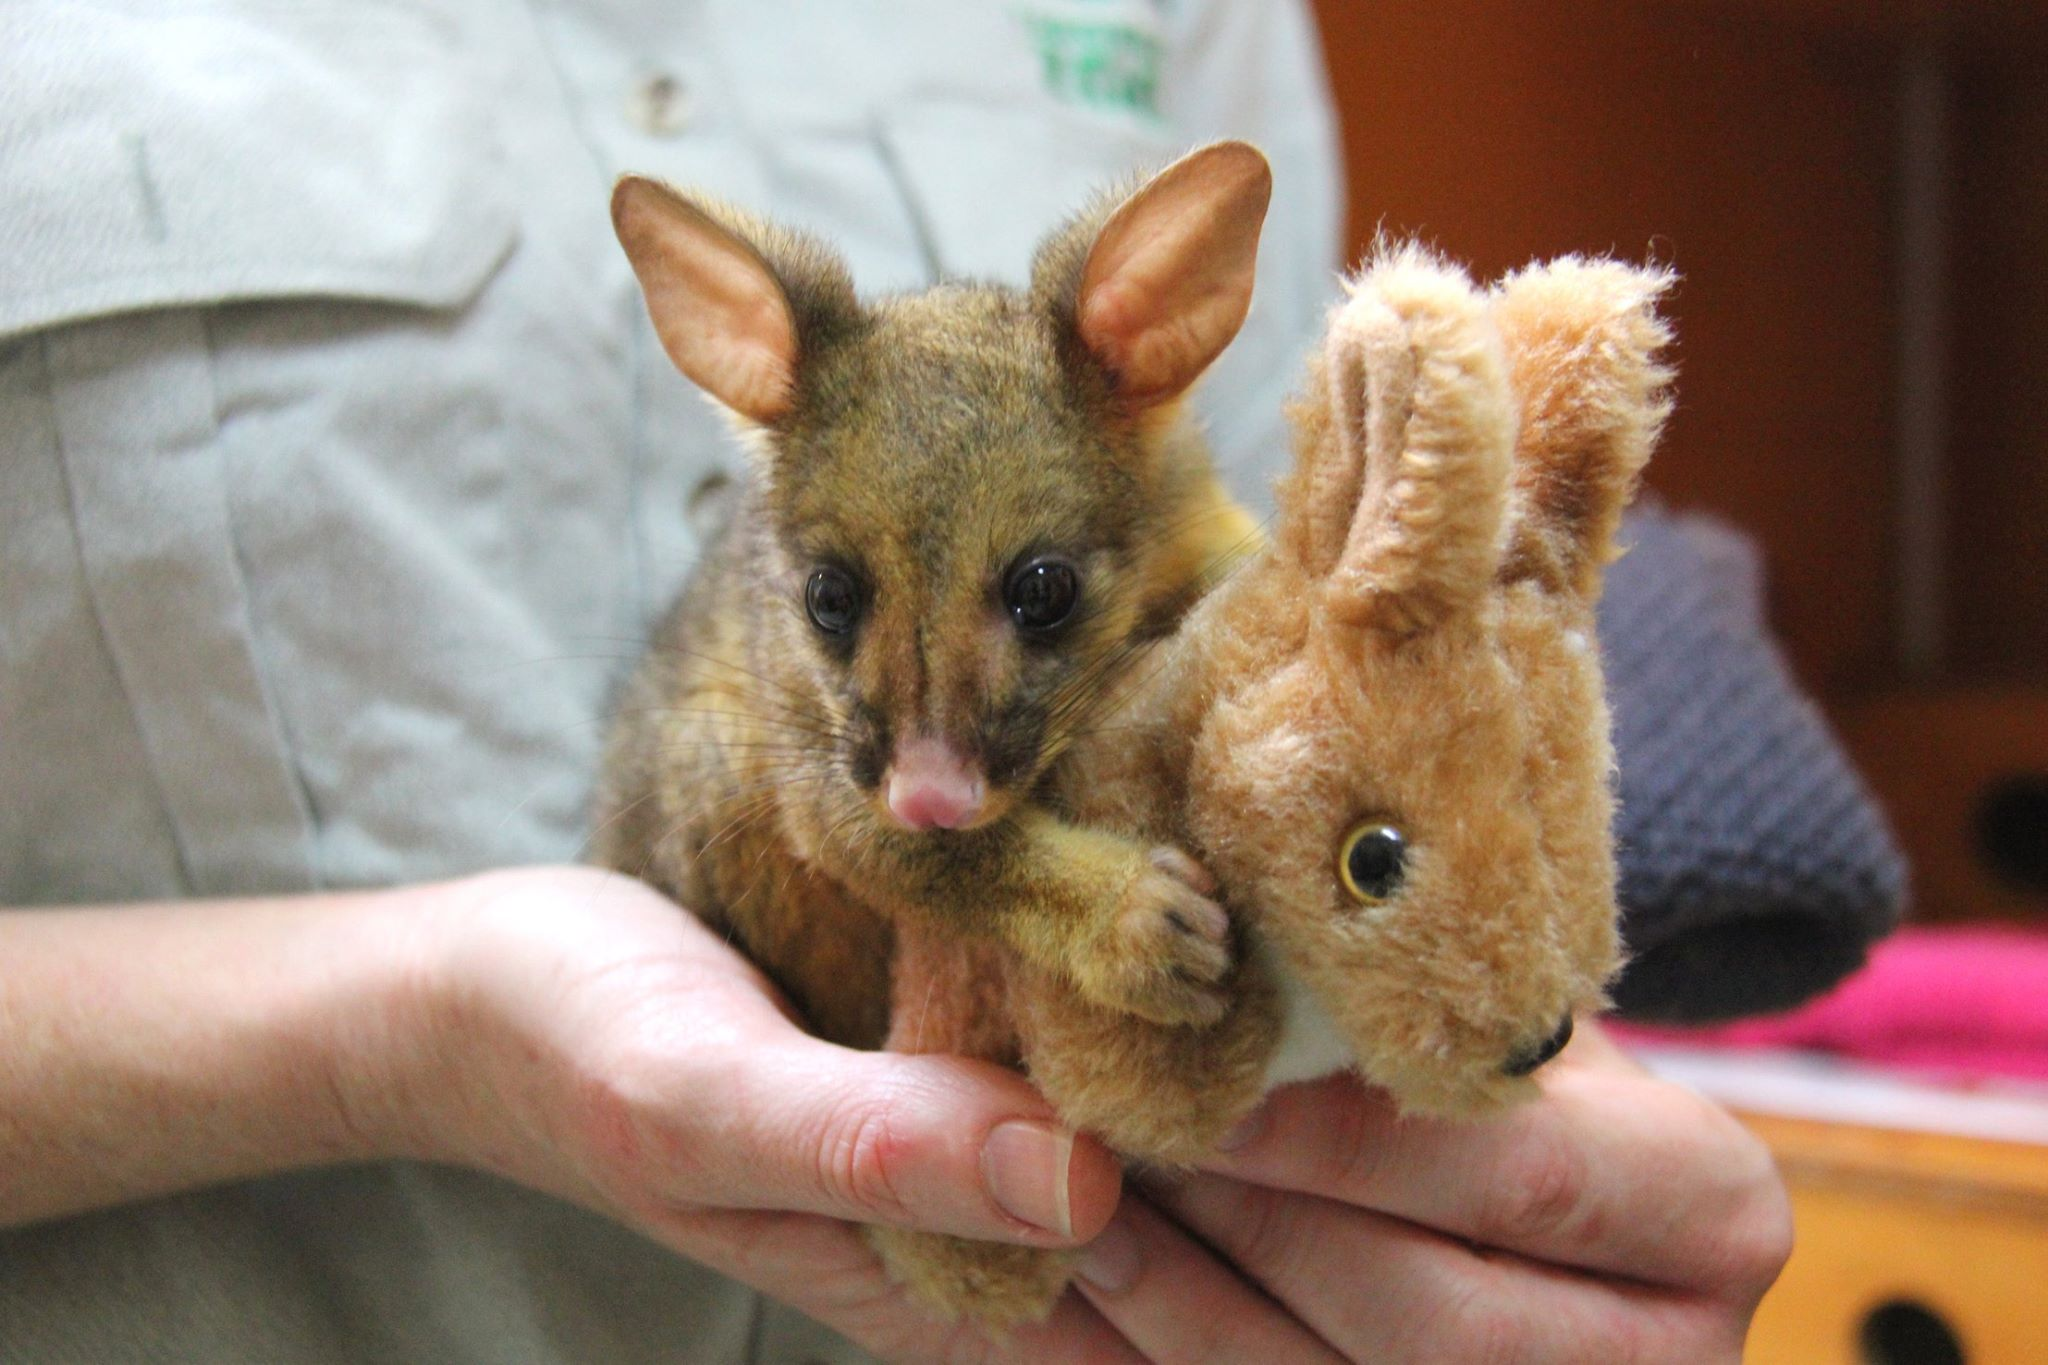 A baby possum hugging a toy kangaroo is everything you need for Thursday